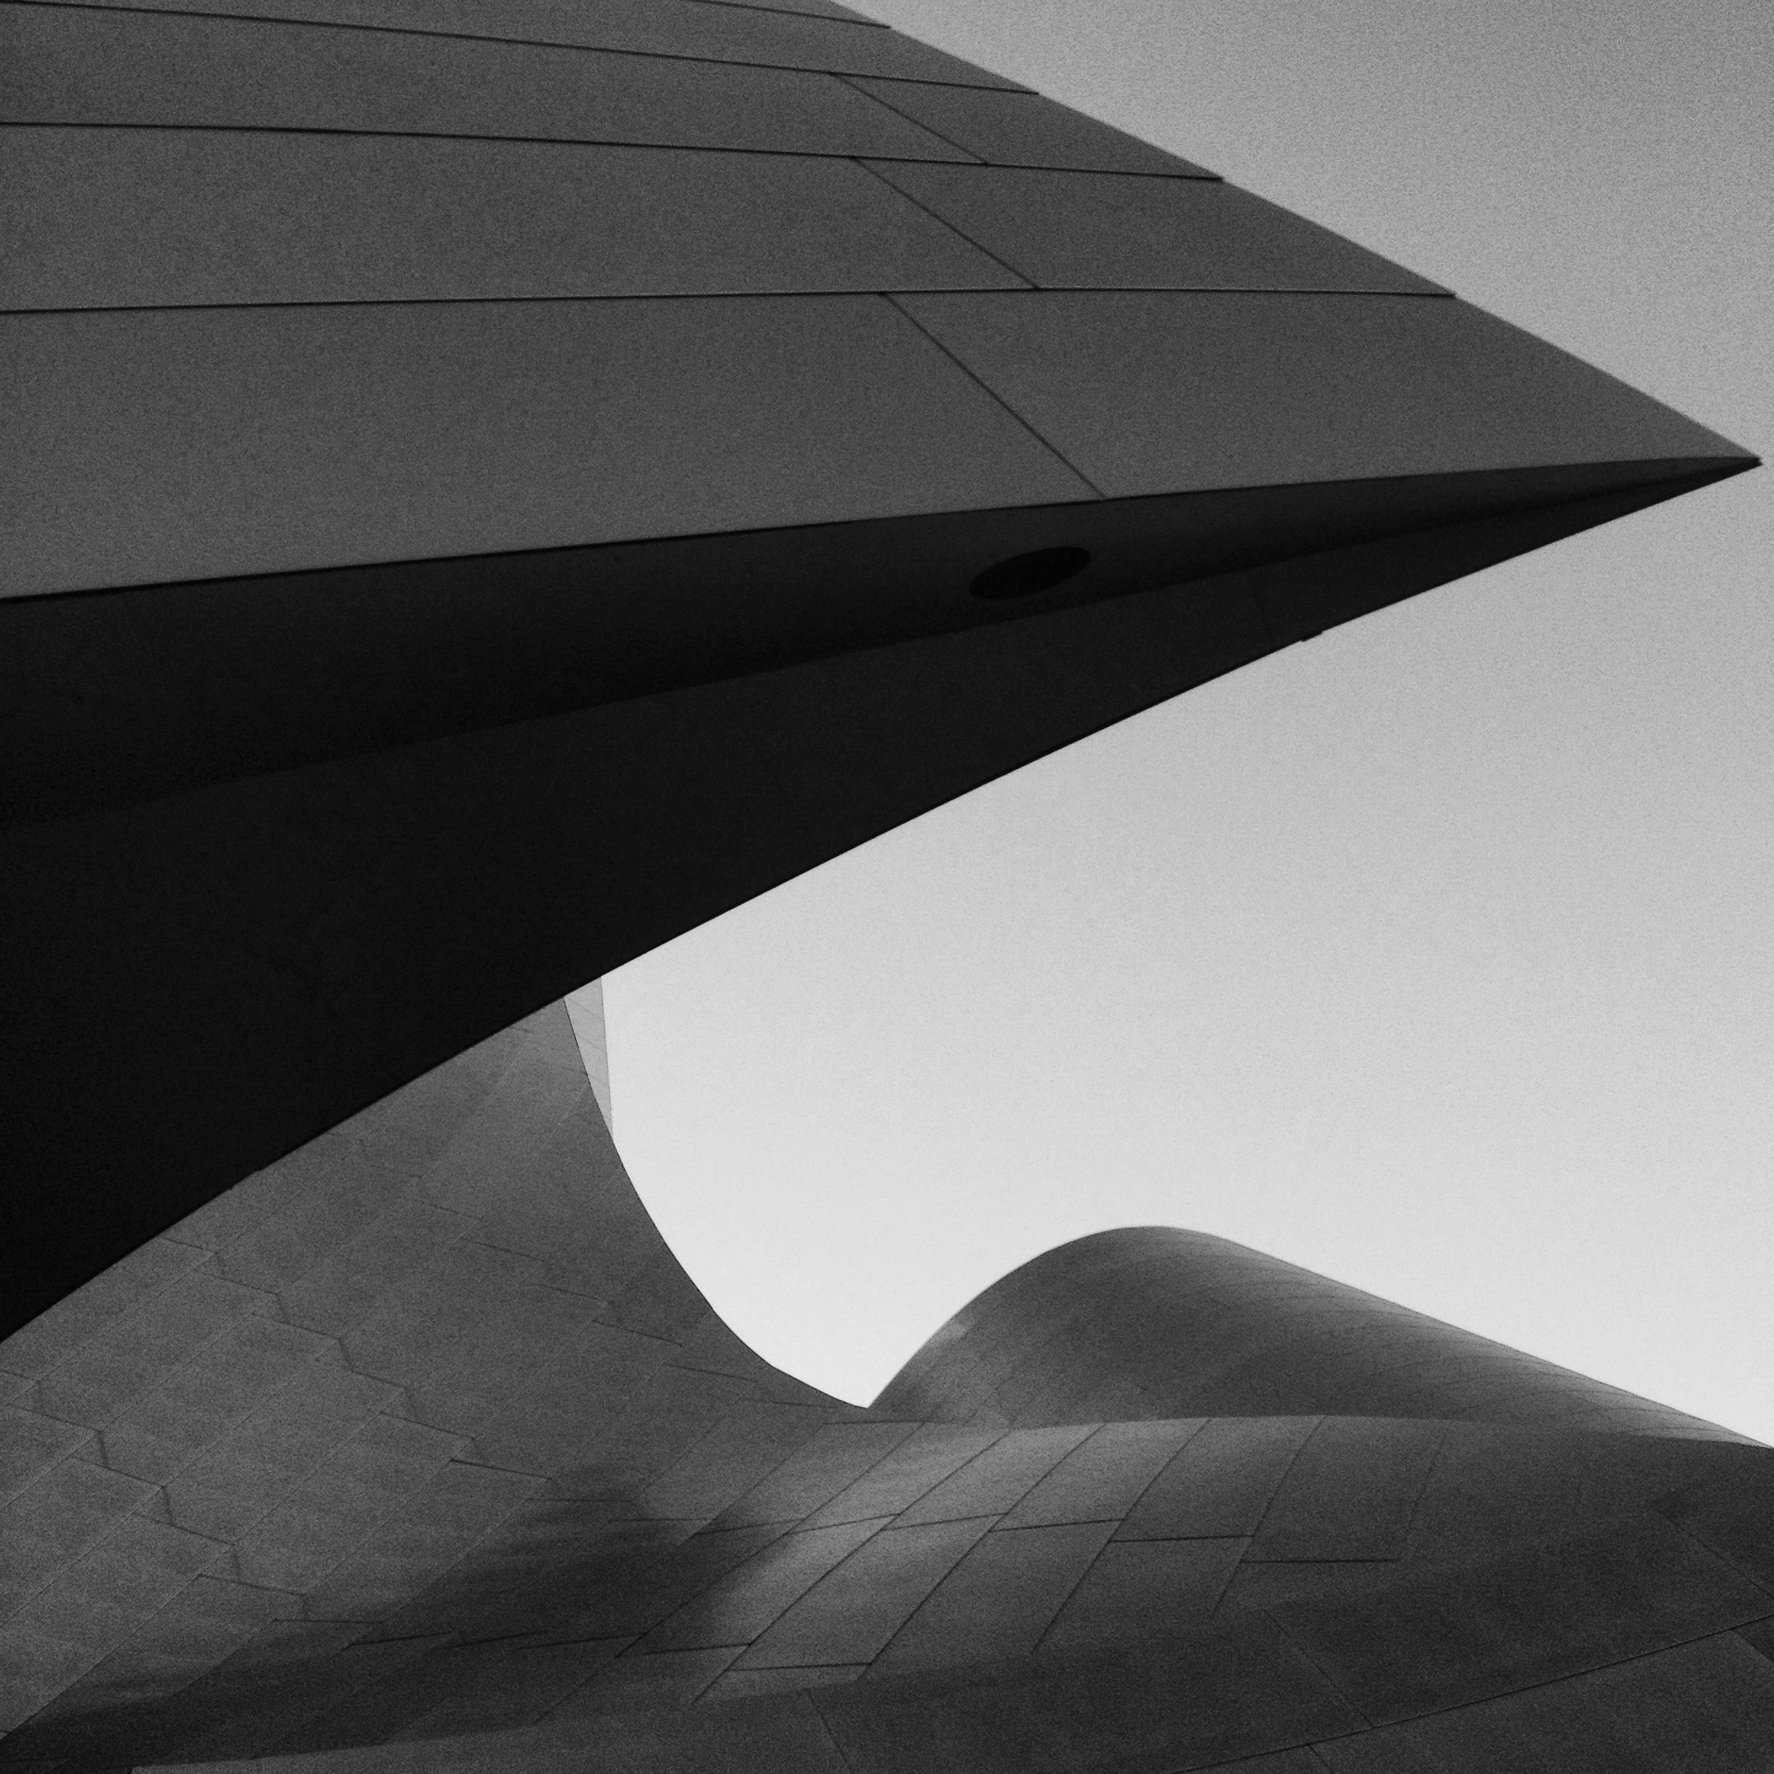 WALT DISNEY CONCERT HALL - B&W 10